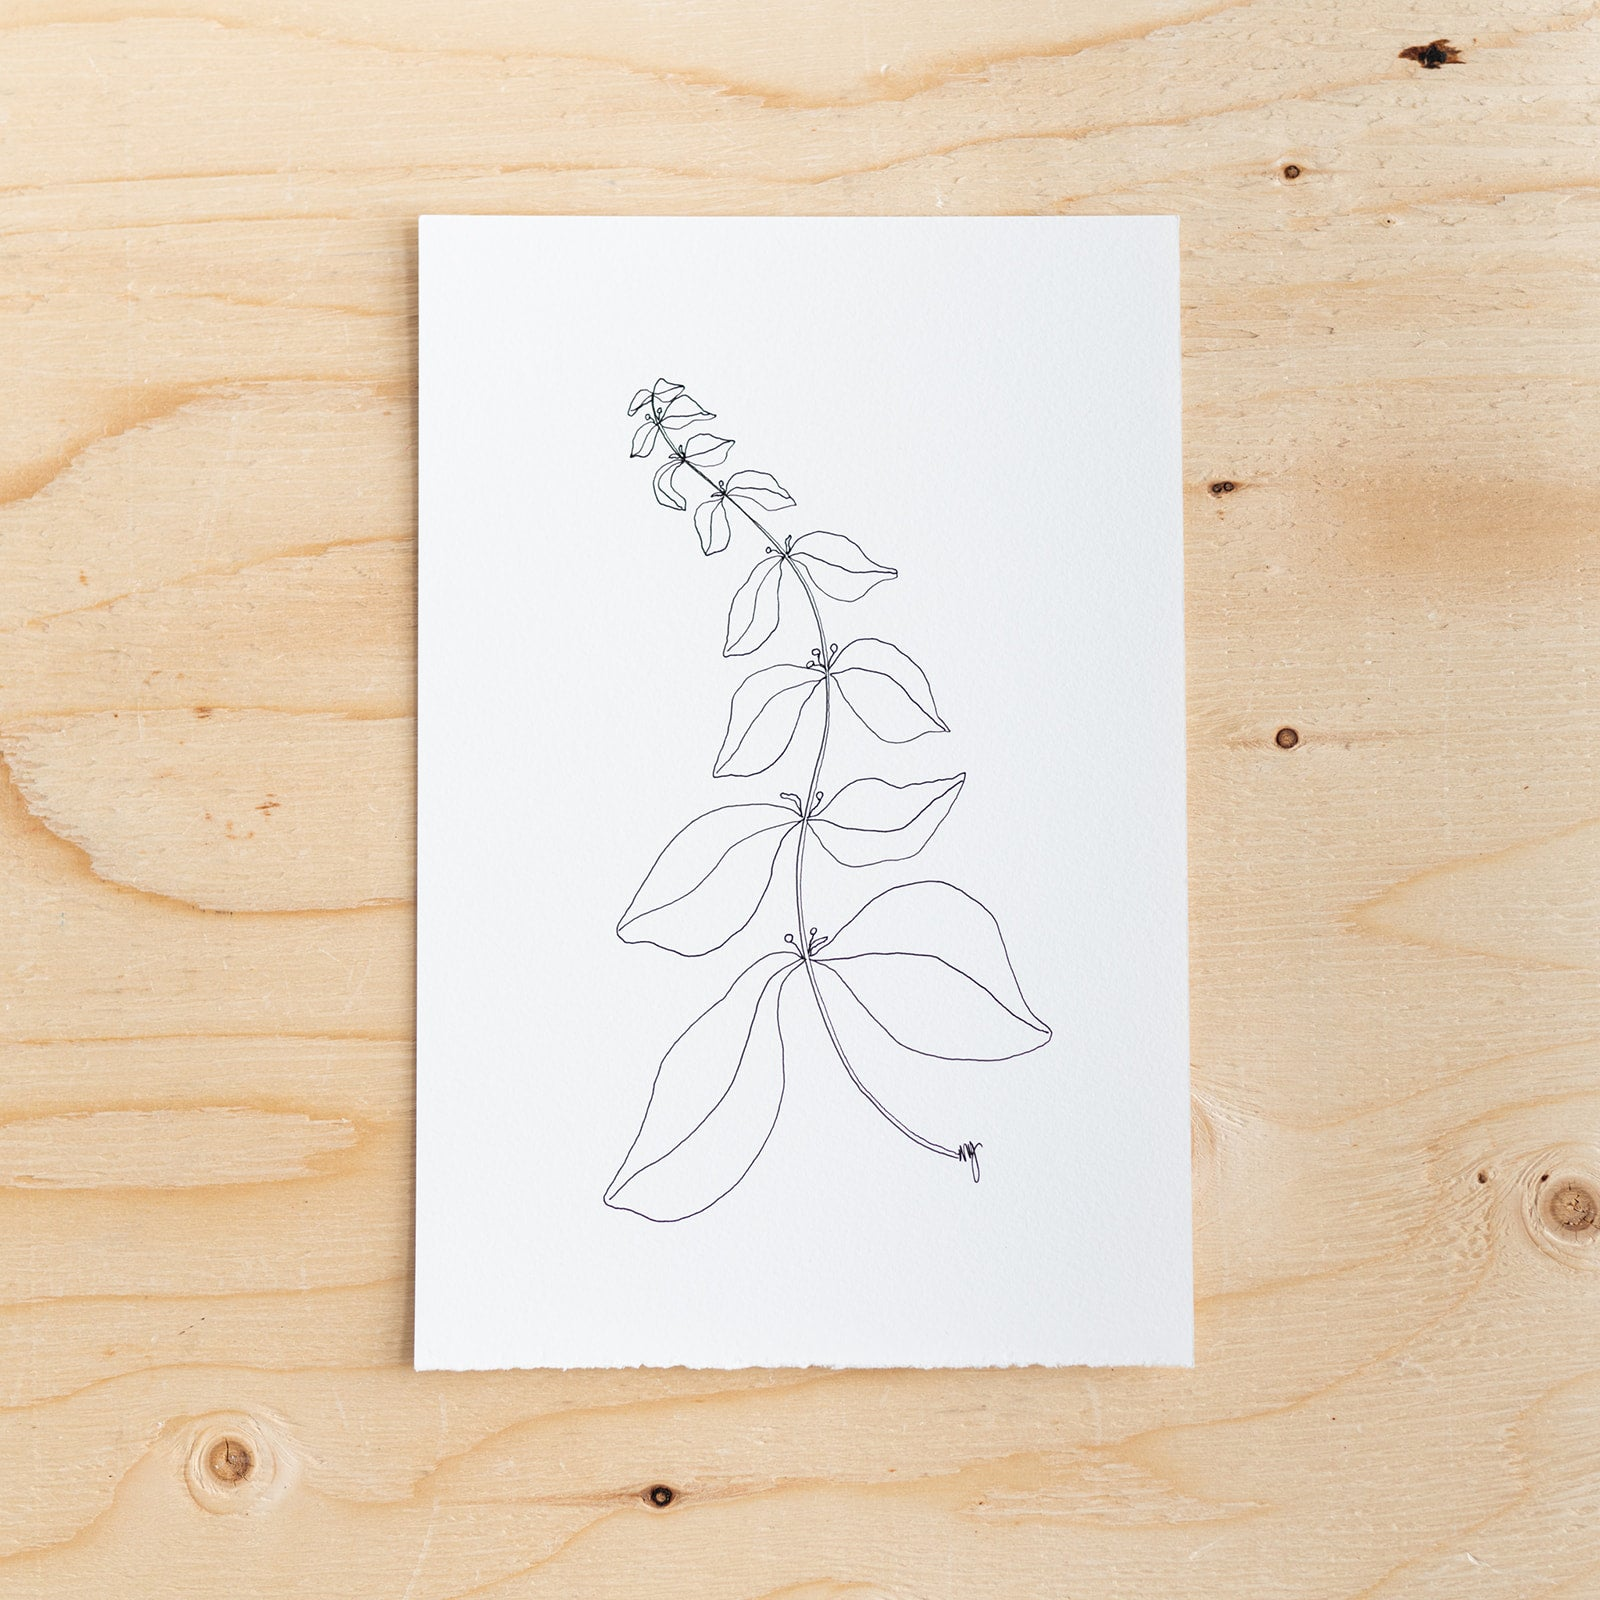 Botanical Line Drawing by Melissa Mary Jenkins - Rug & Weave